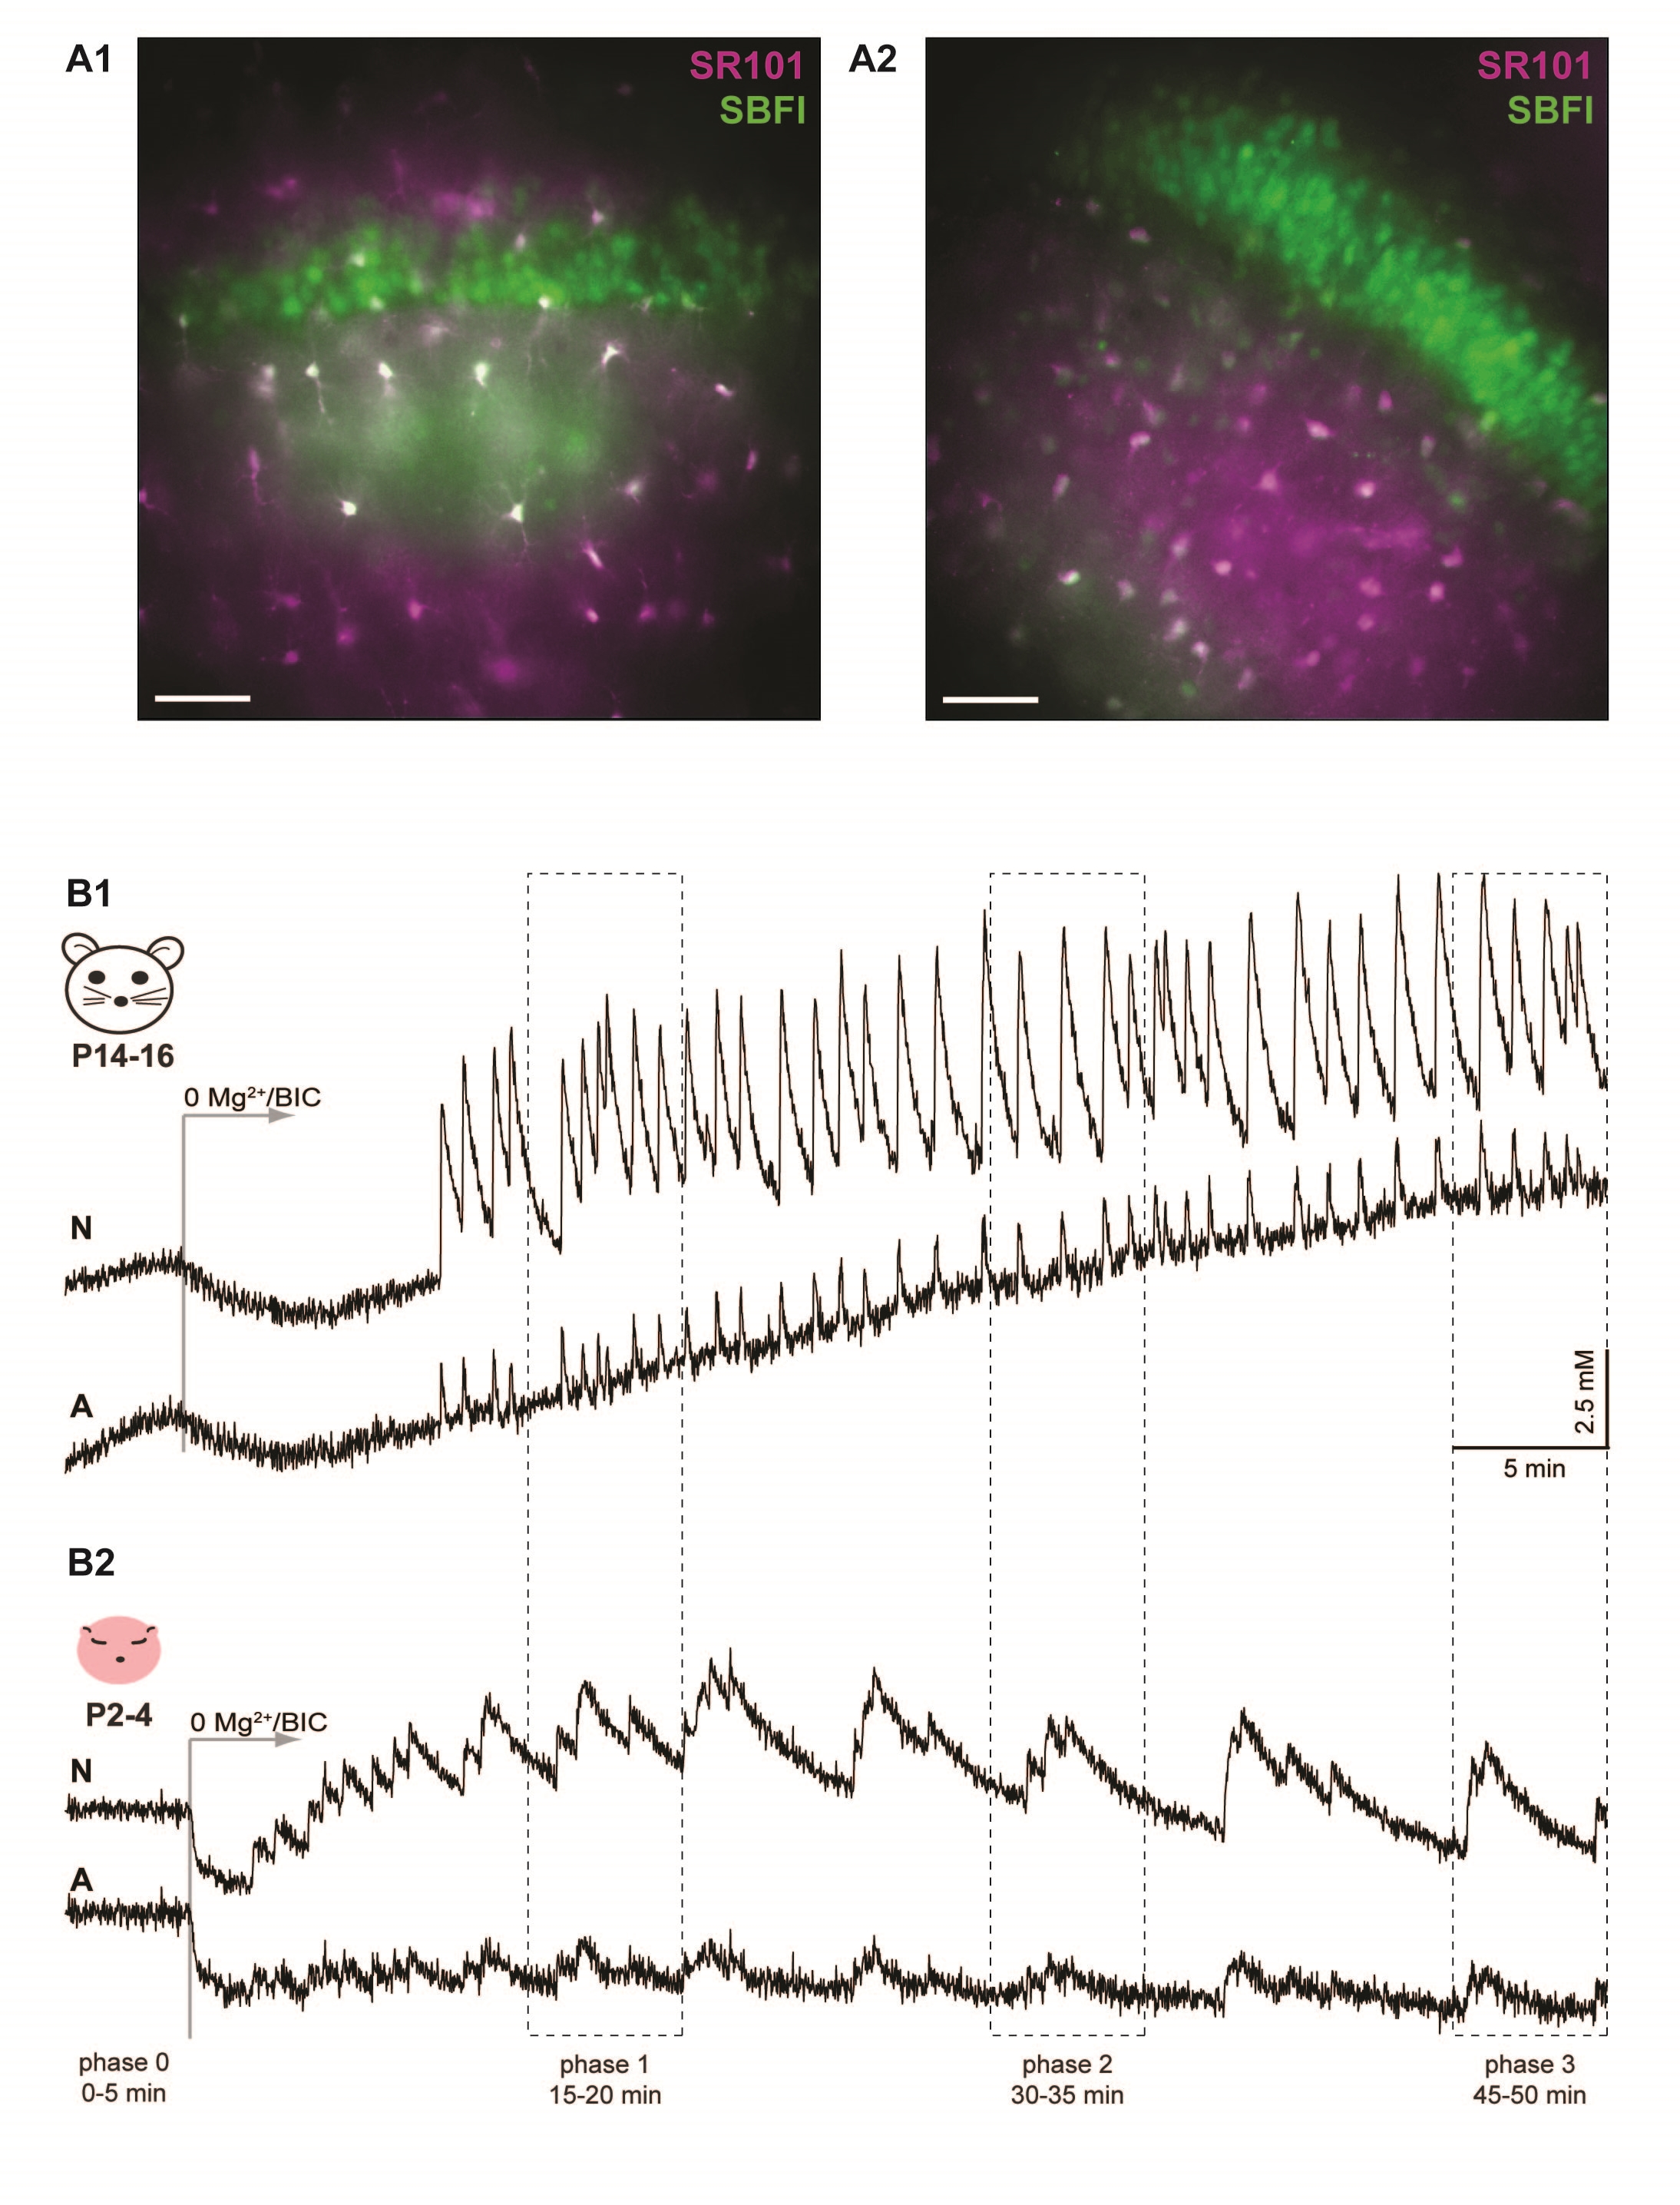 Figure 1. Network sodium oscillations induced by dis-inhibition in early postnatal hippocampus. A) Merged epifluorescence images of the CA1 region from P14-16 (A1) and neonatal (A2) slices stained with SBFI (green) and SR101 (magenta). The scale bars indicate 50 µm. B) Application of 0Mg2+/BIC induced recurrent sodium oscillations in neurons (upper trace; N) and astrocytes (lower trace; A) in both P14-16 (B1) as well as neonatal (B2) tissue slices. The traces represent averages of all individual cells from the illustrated experiment. The time windows in which detailed analyses were performed (phase 0-3) are indicated.